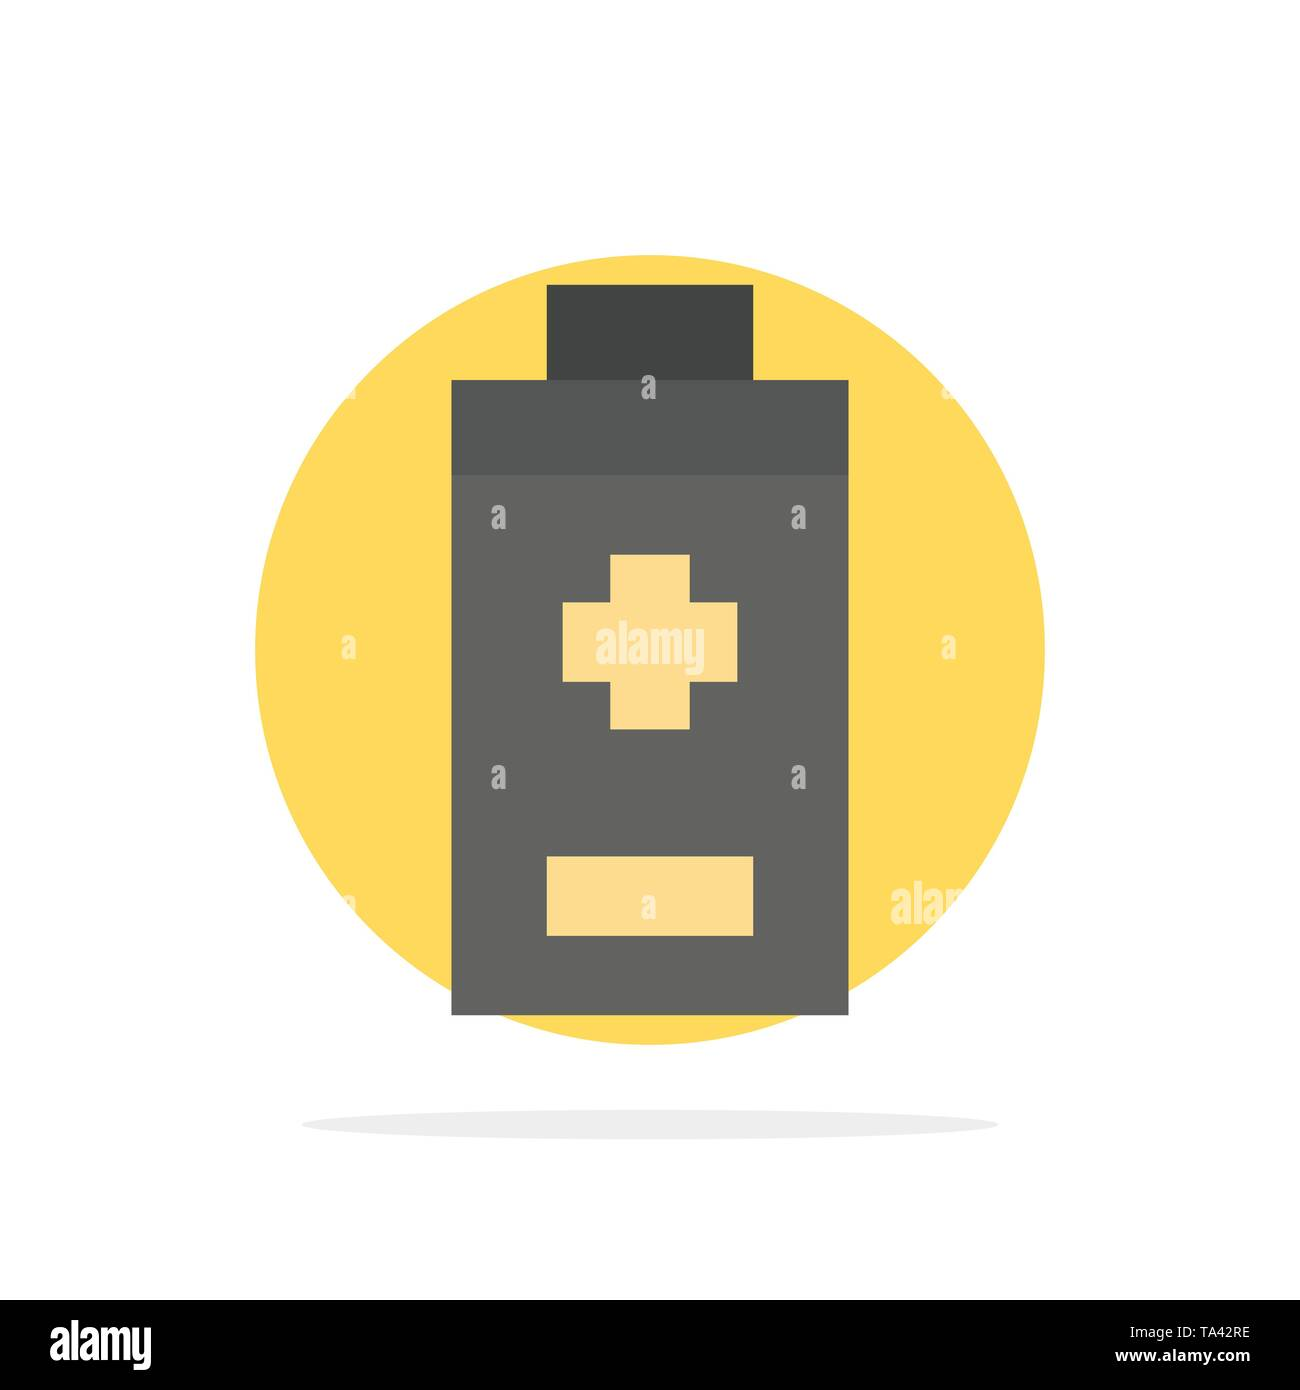 Battery, Minus, Plus Abstract Circle Background Flat color Icon - Stock Image